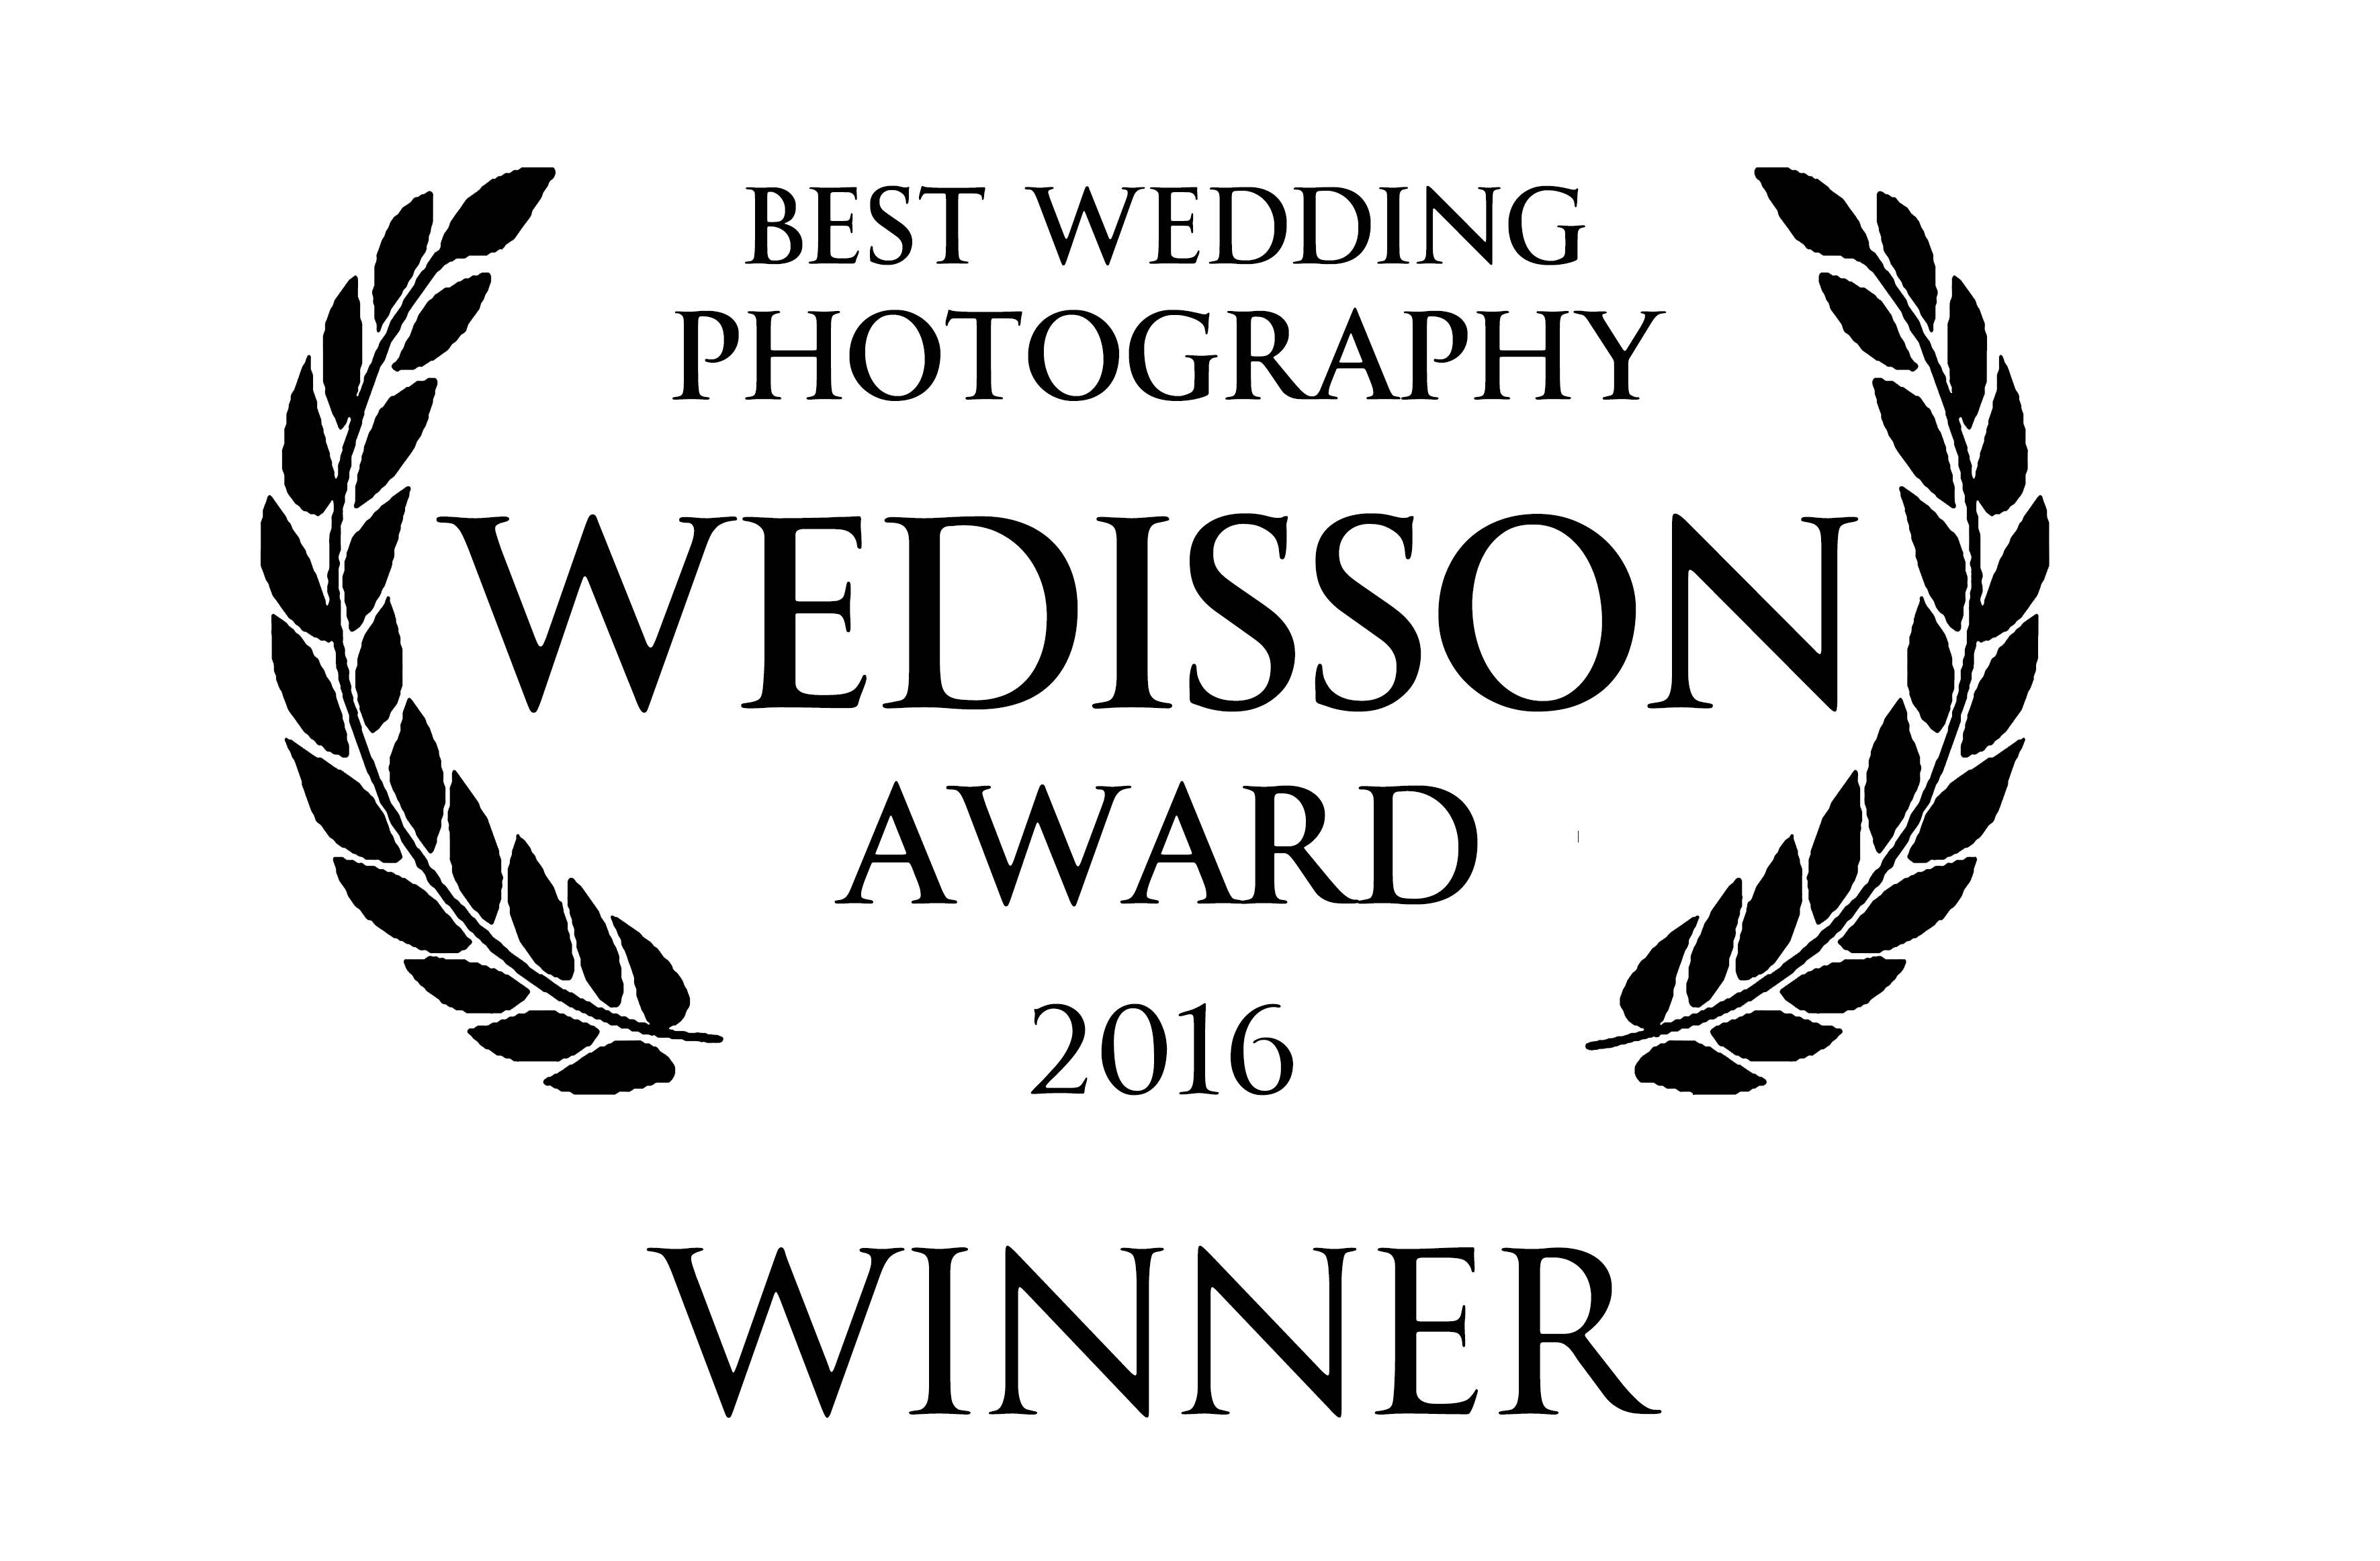 sunbloom_wedisson_wedding_award